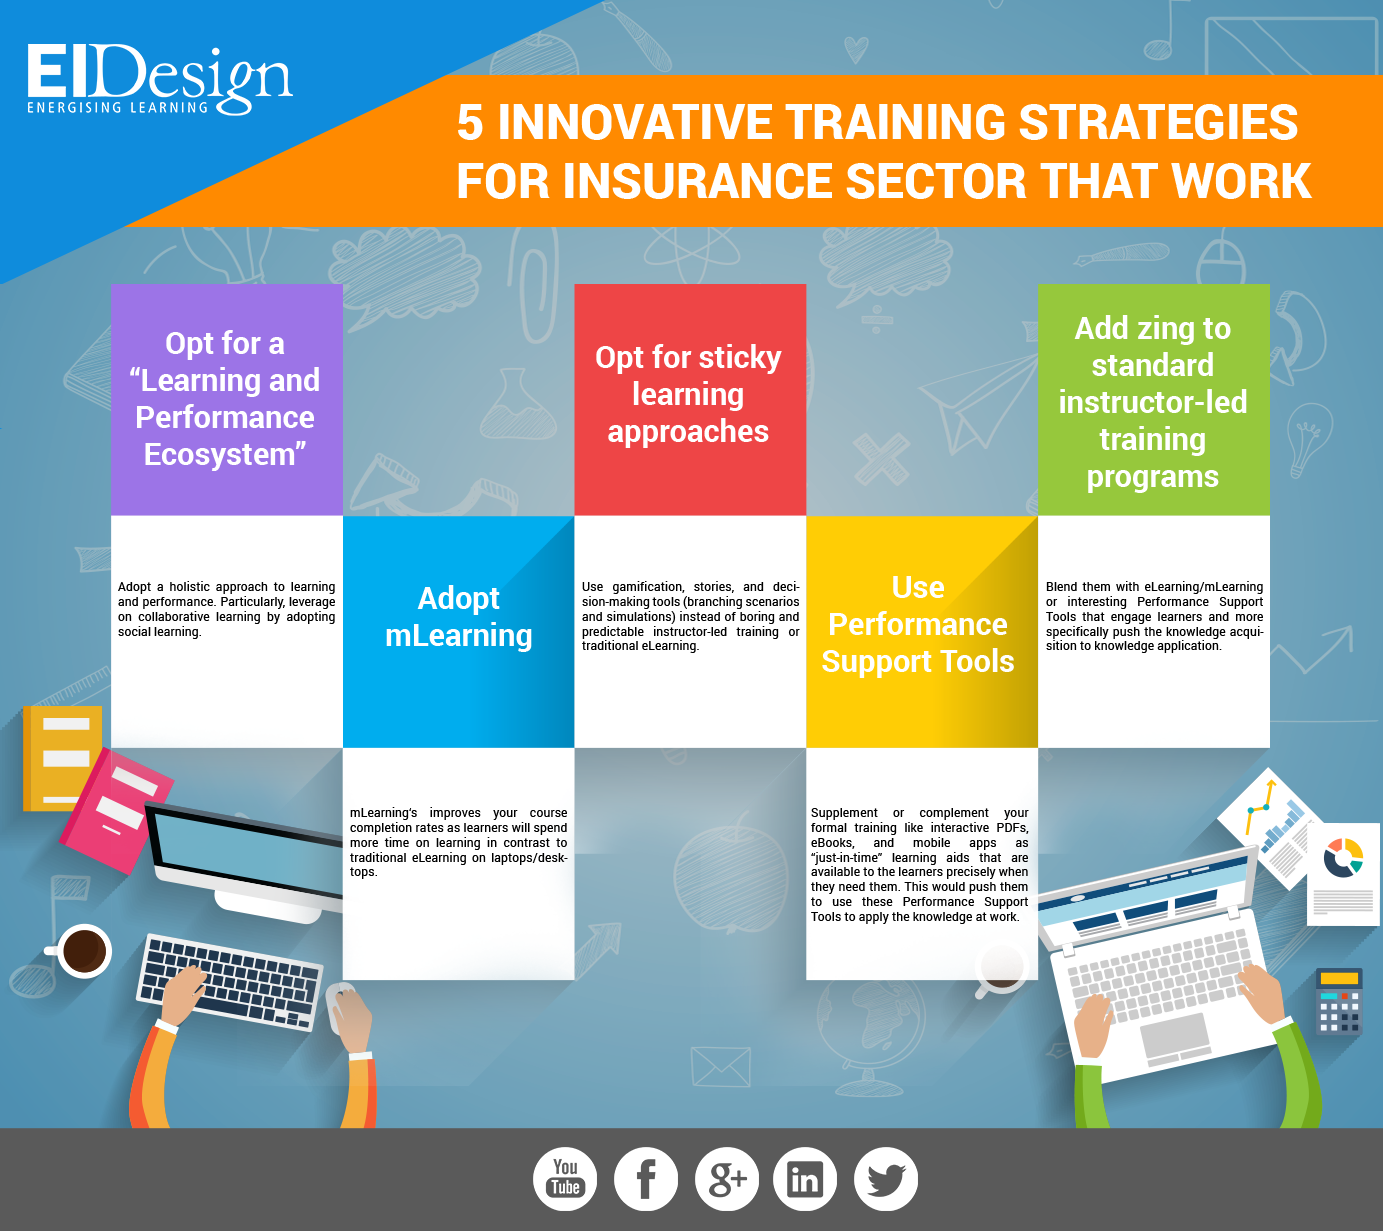 5 Innovative Training Strategies For Insurance Sector That Work